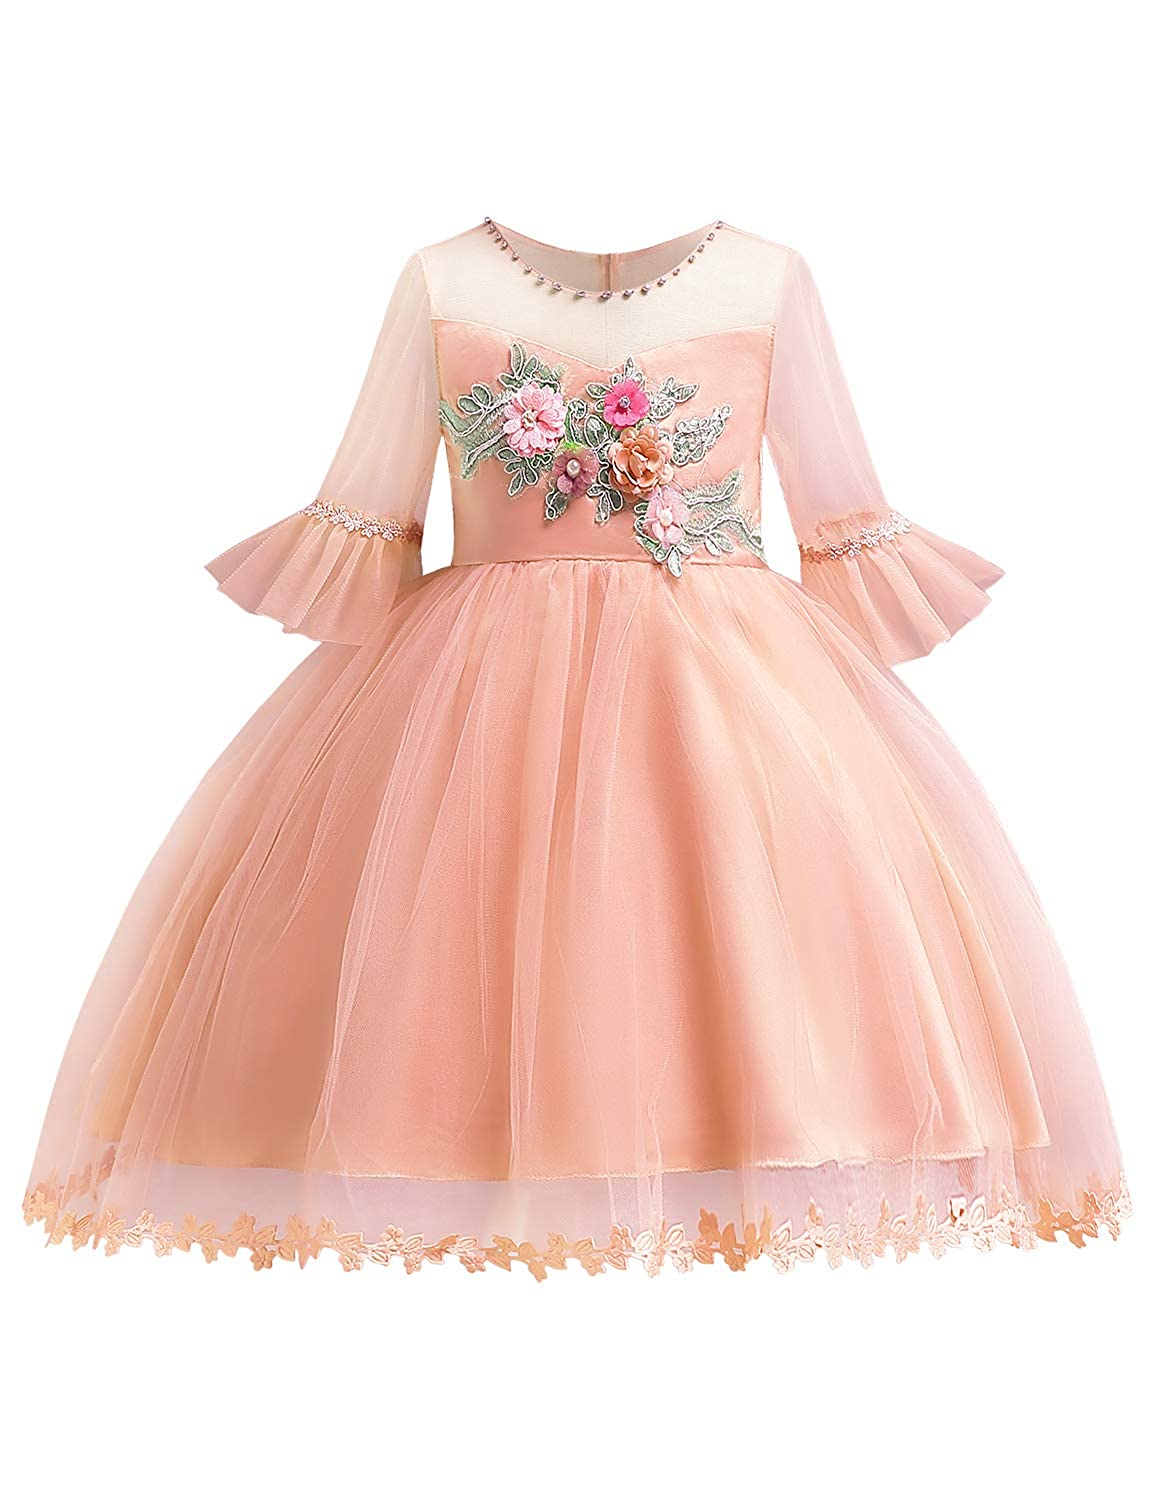 Weddings & Events Strict Beautiful Girls Sleeveless Satin Bowknot Swing Ruffles Flower Girl Dress Stylish Princess Kids Girls Wedding Party Dress Sz 4-14 Carefully Selected Materials Flower Girl Dresses